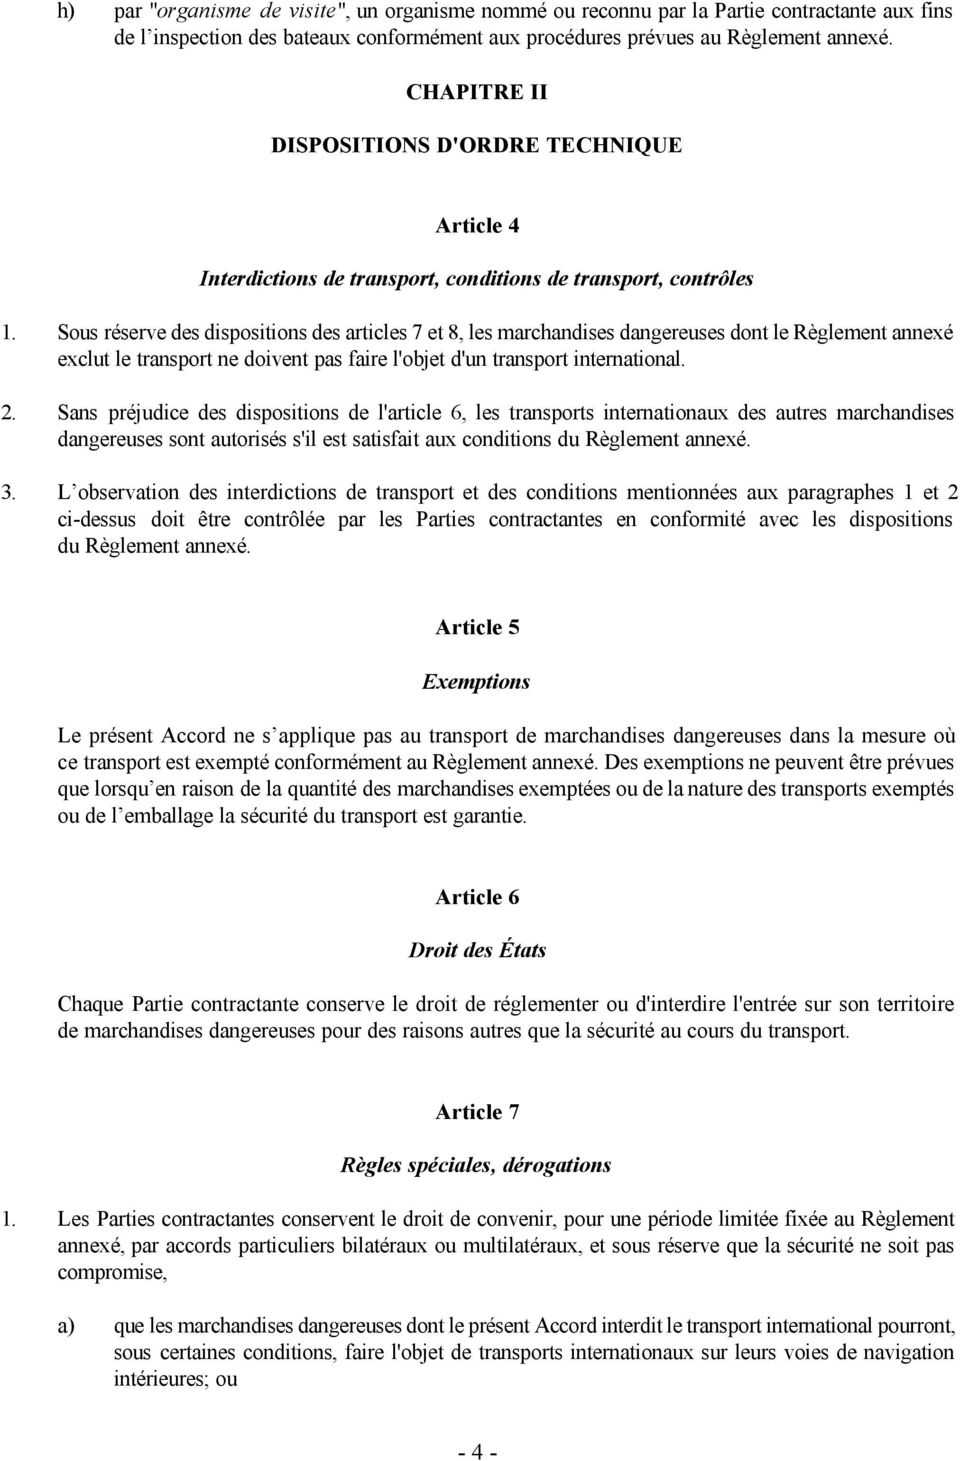 Sous réserve des dispositions des articles 7 et 8, les marchandises dangereuses dont le Règlement annexé exclut le transport ne doivent pas faire l'objet d'un transport international. 2.